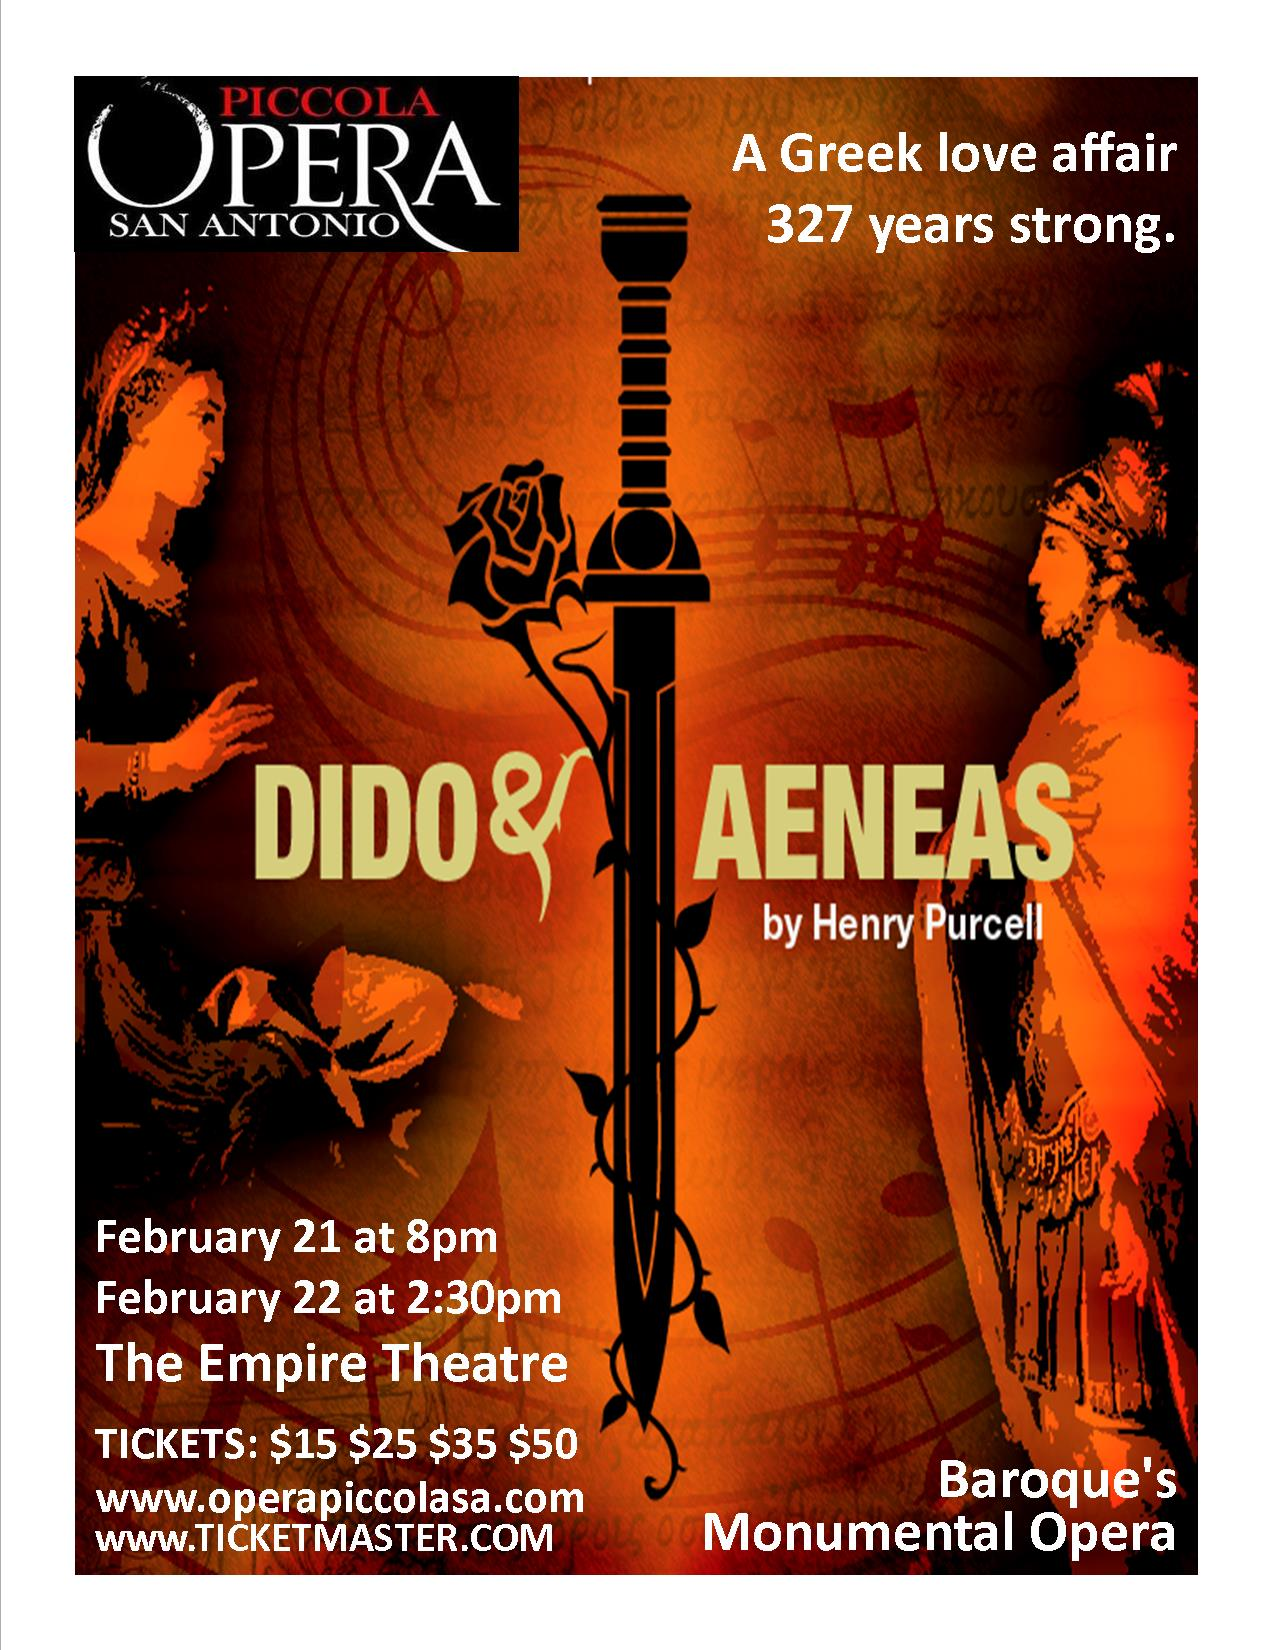 Dido & Aeneas by Henry Purcell